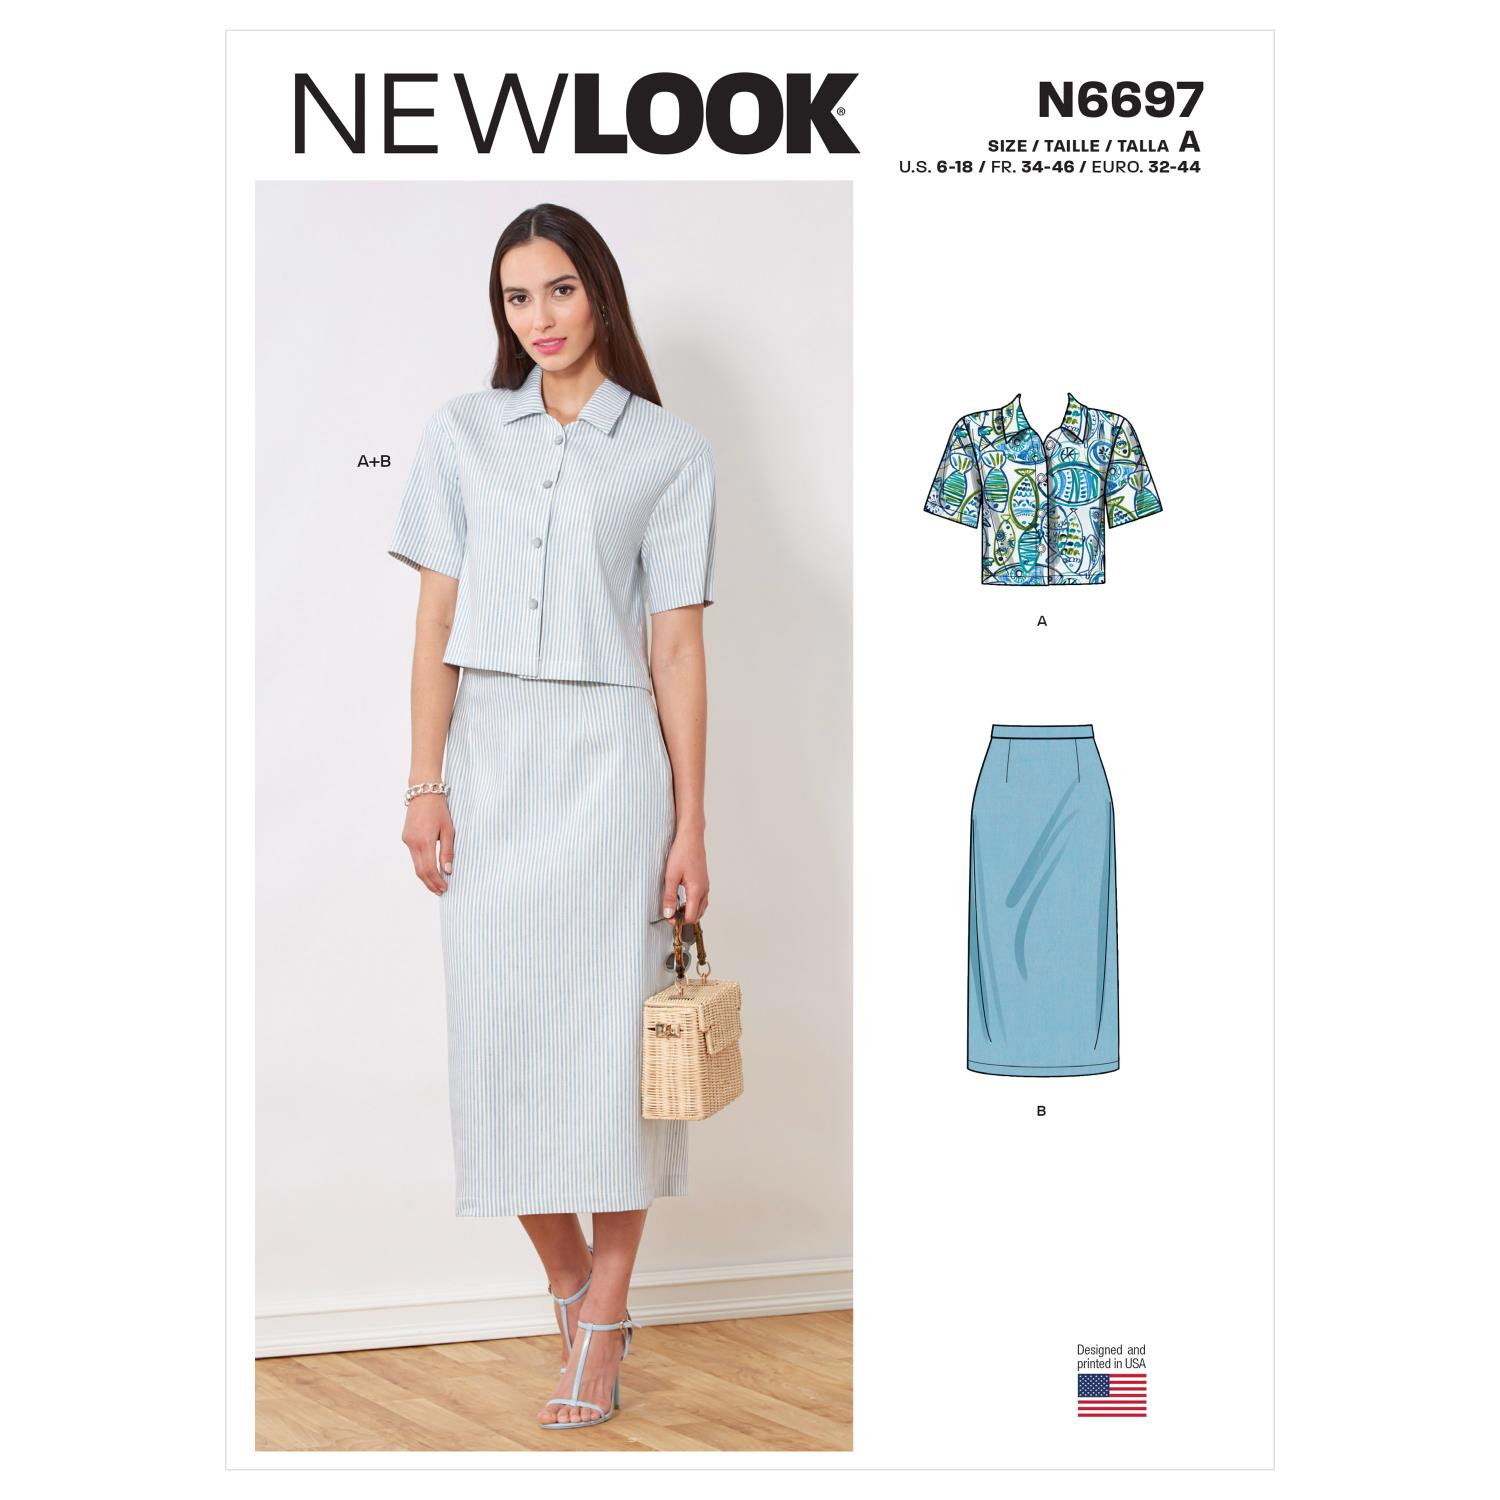 New Look Sewing Pattern N6697 Top and Skirt